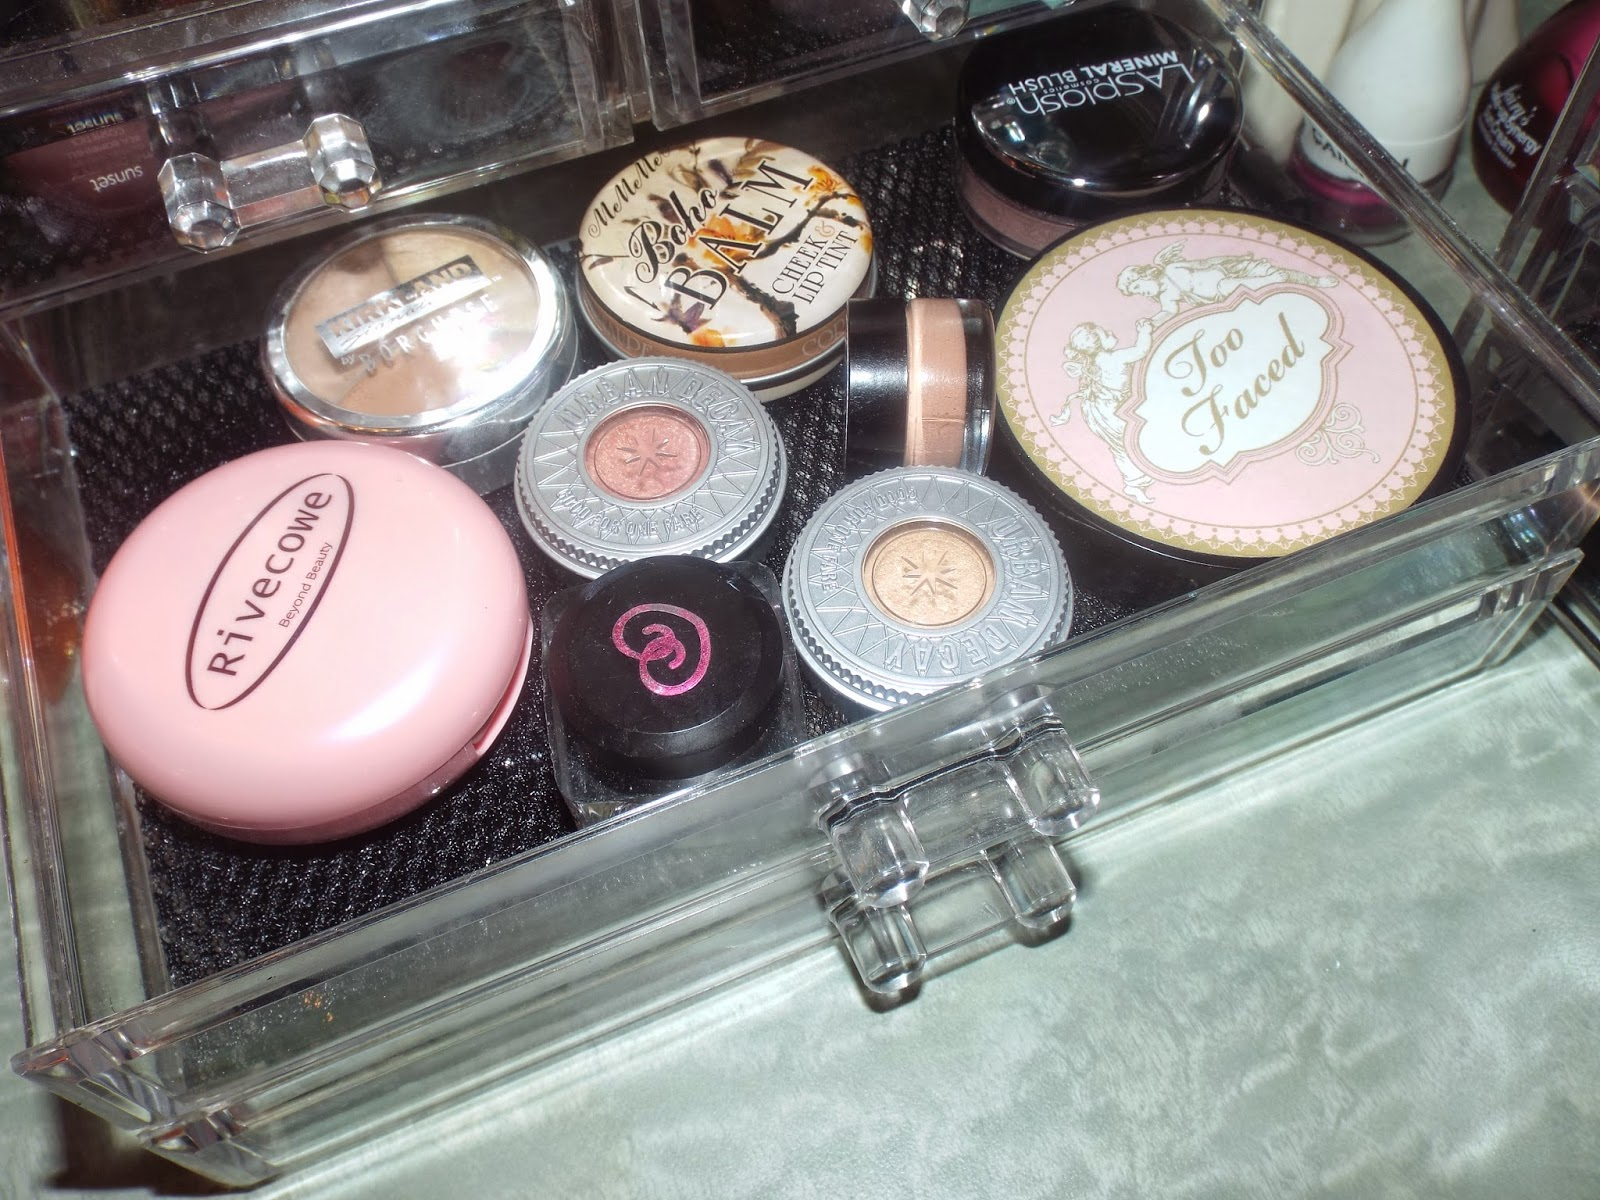 Blushes, concealers & More